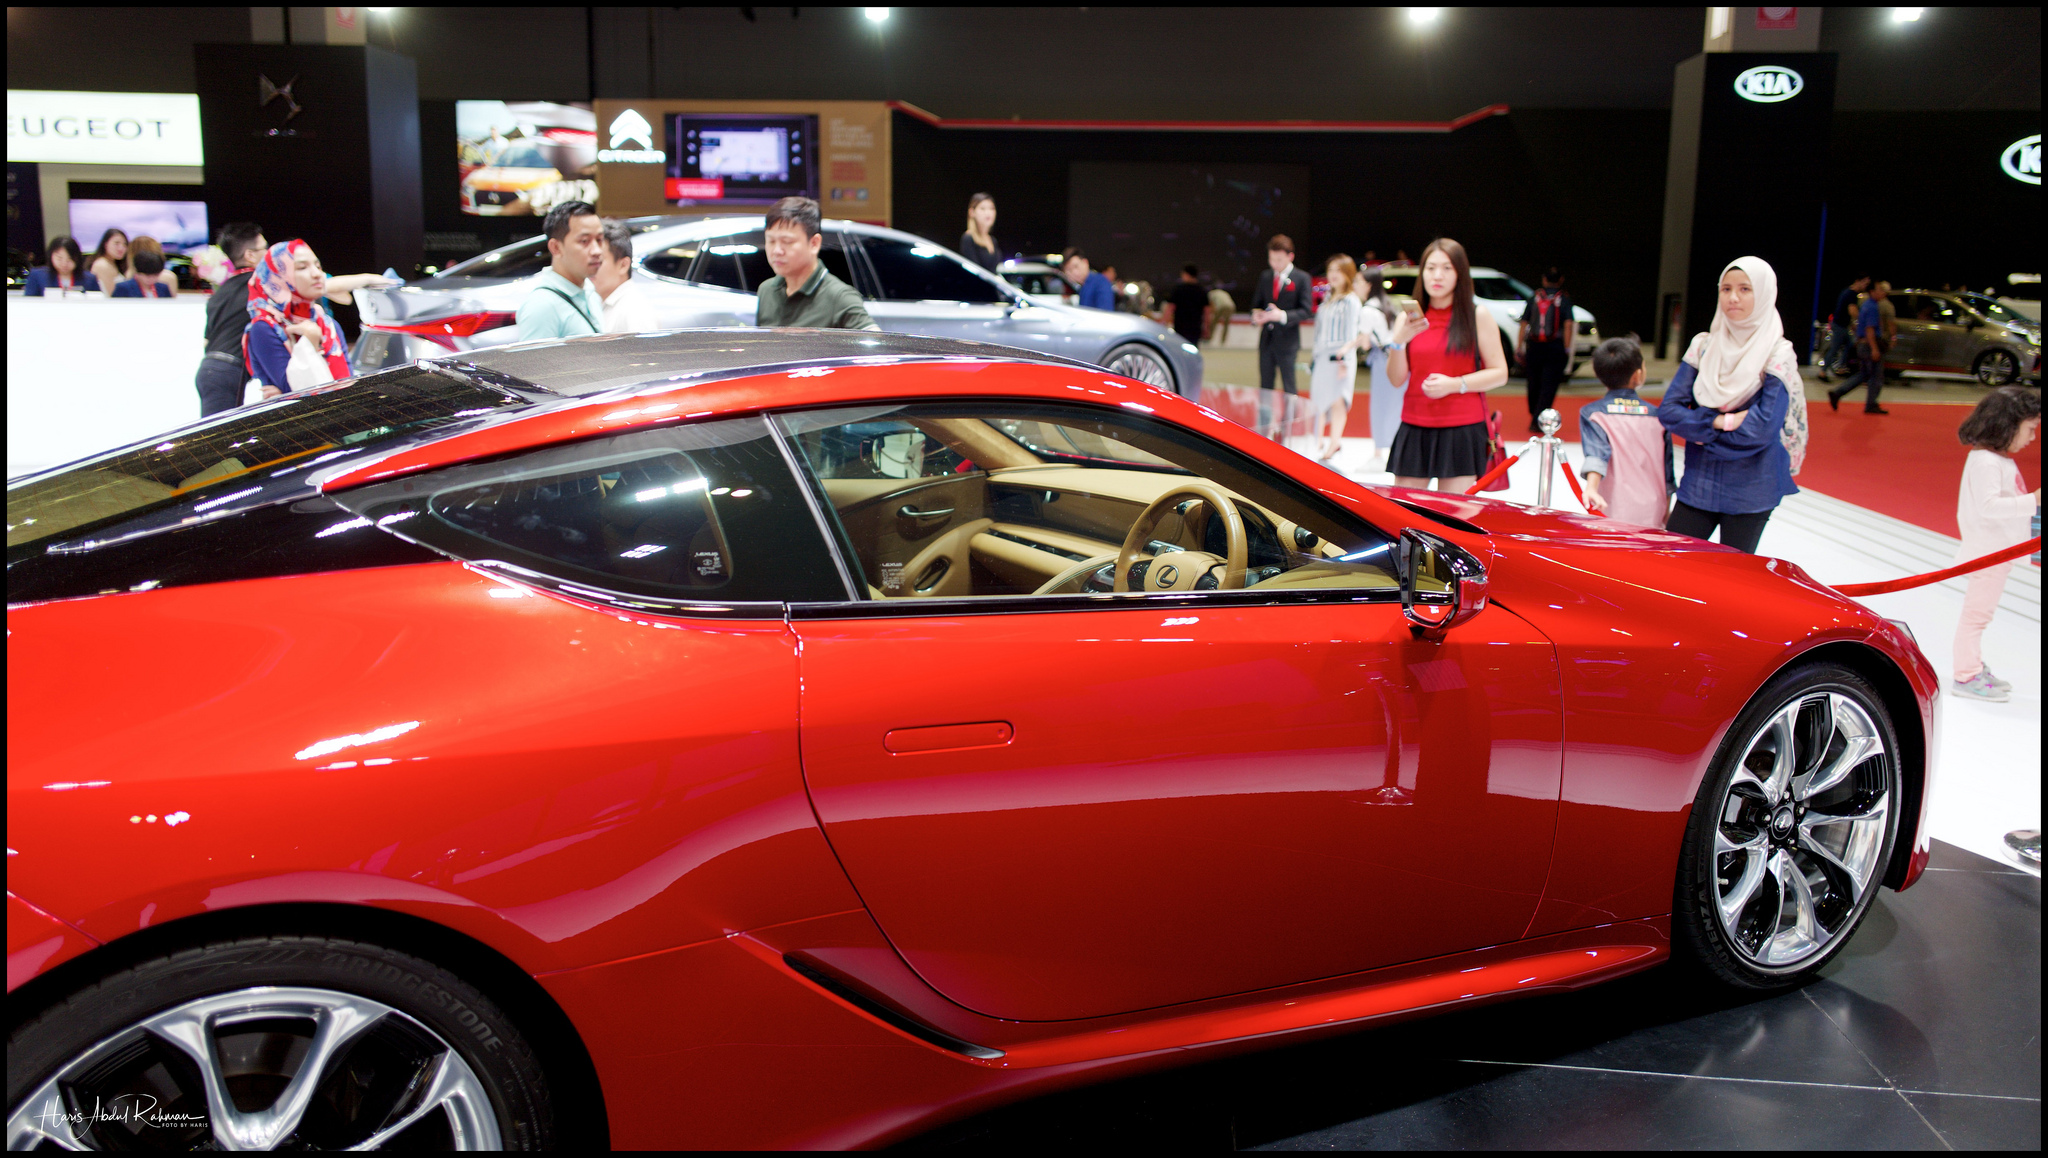 This Lexus cost well over a million ringgit …